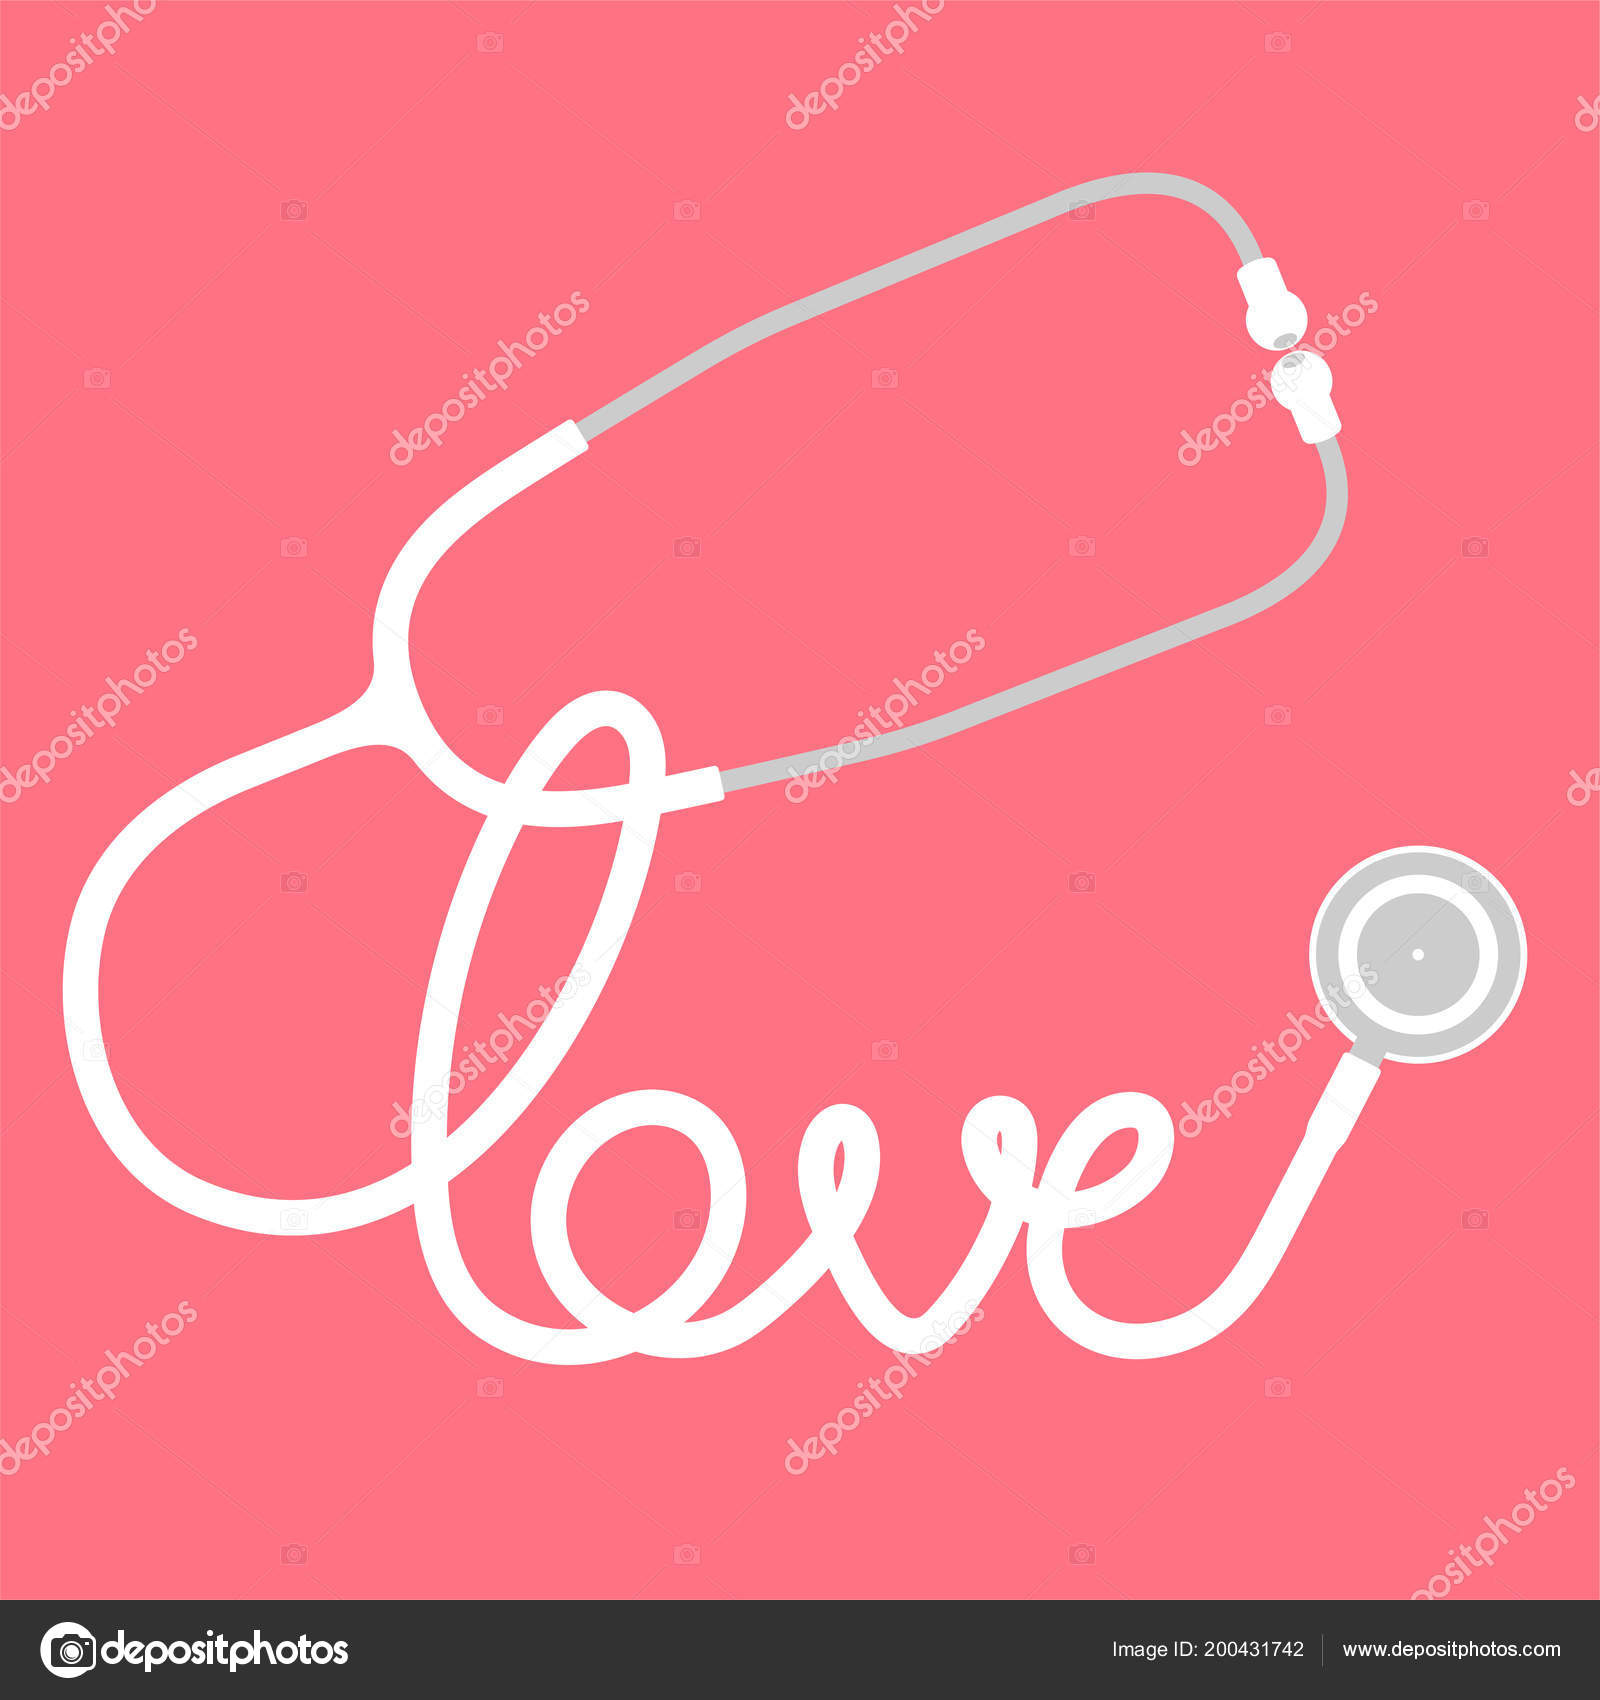 Stethoscope White Color Love Text Made Cable Flat Design Isolated ...